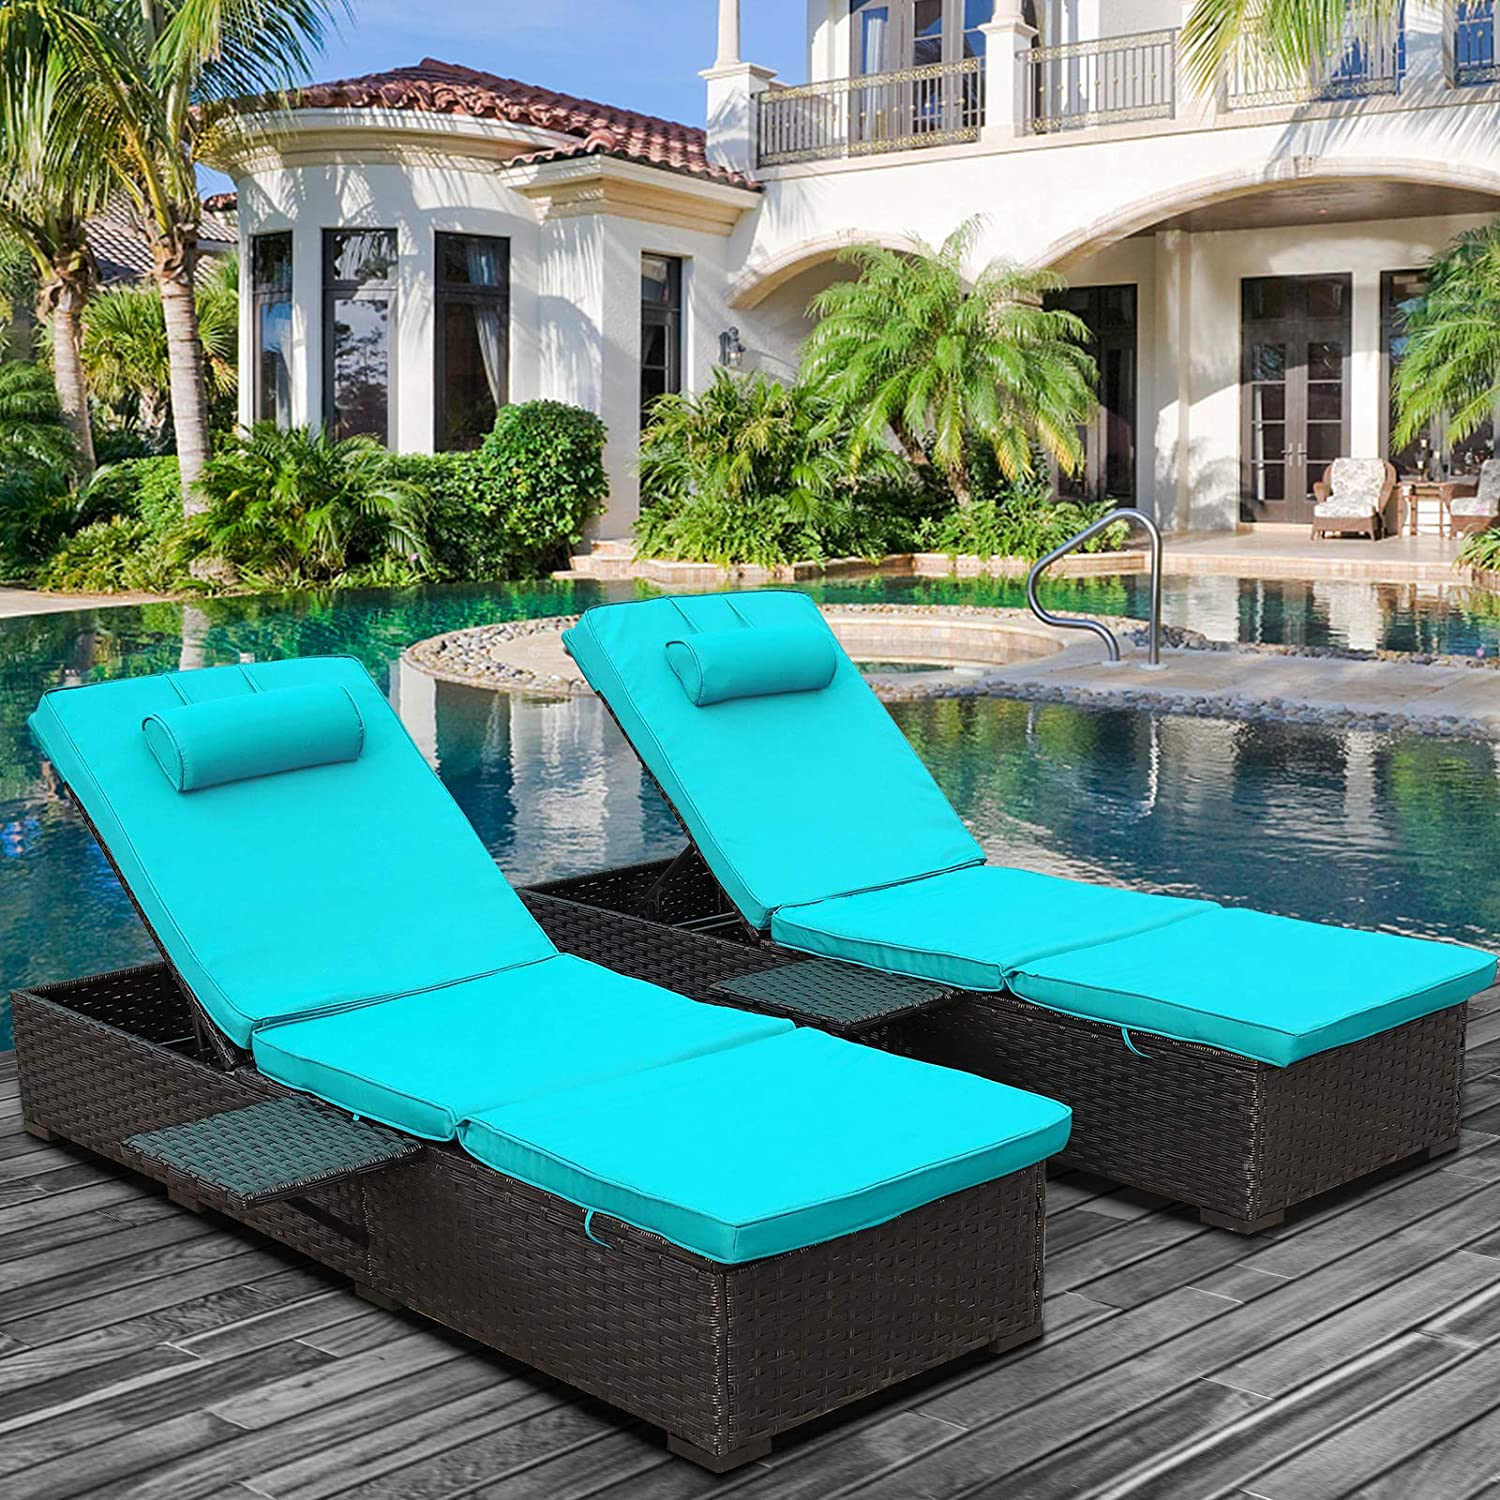 WAROOM Outdoor PE Wicker Patio Chaise Lounge, 2-Pack